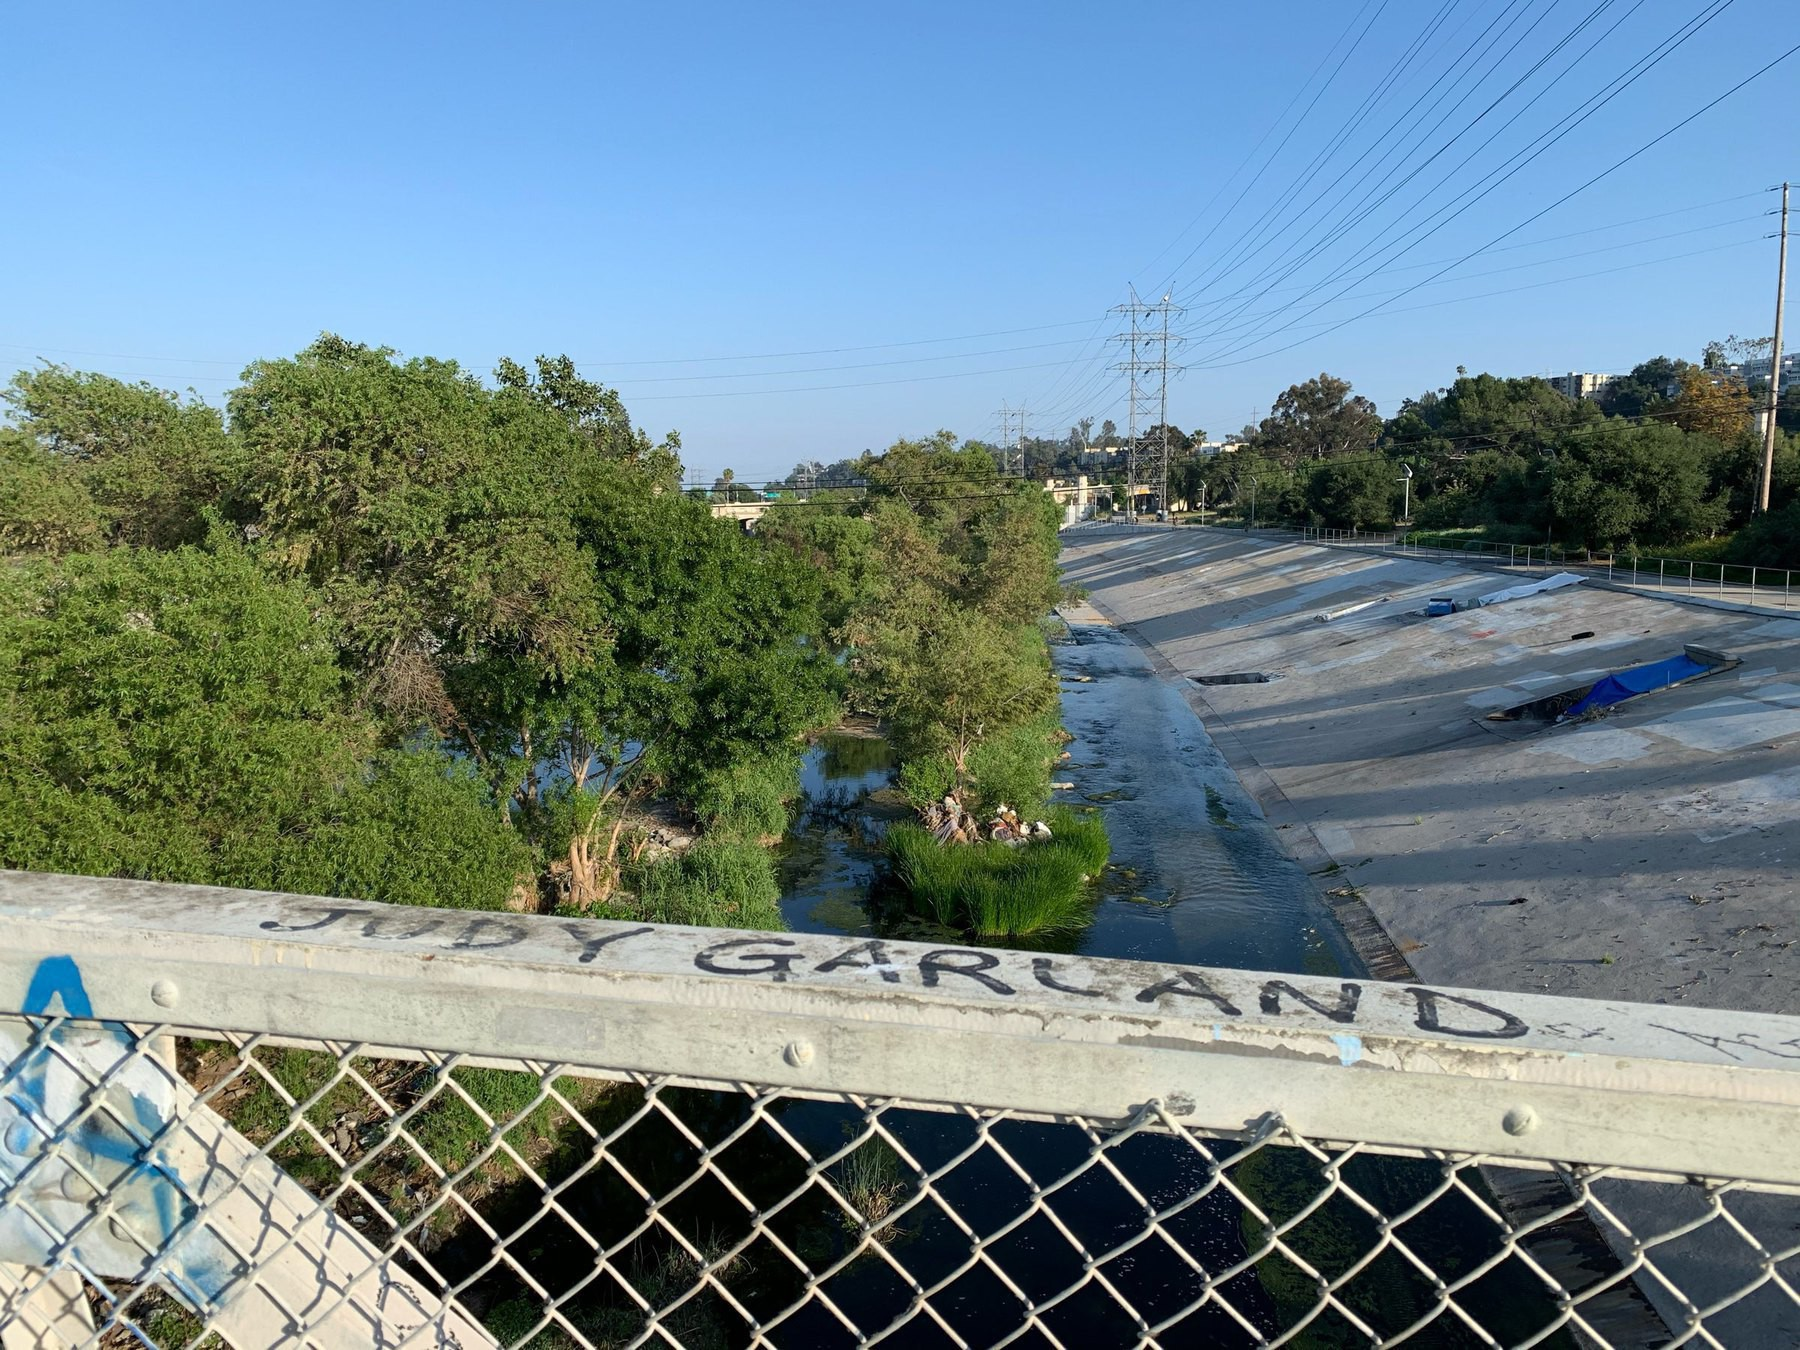 overlooking bridfe railing with Judy Garland written on it with wide blue sky and green trees in the LA river below